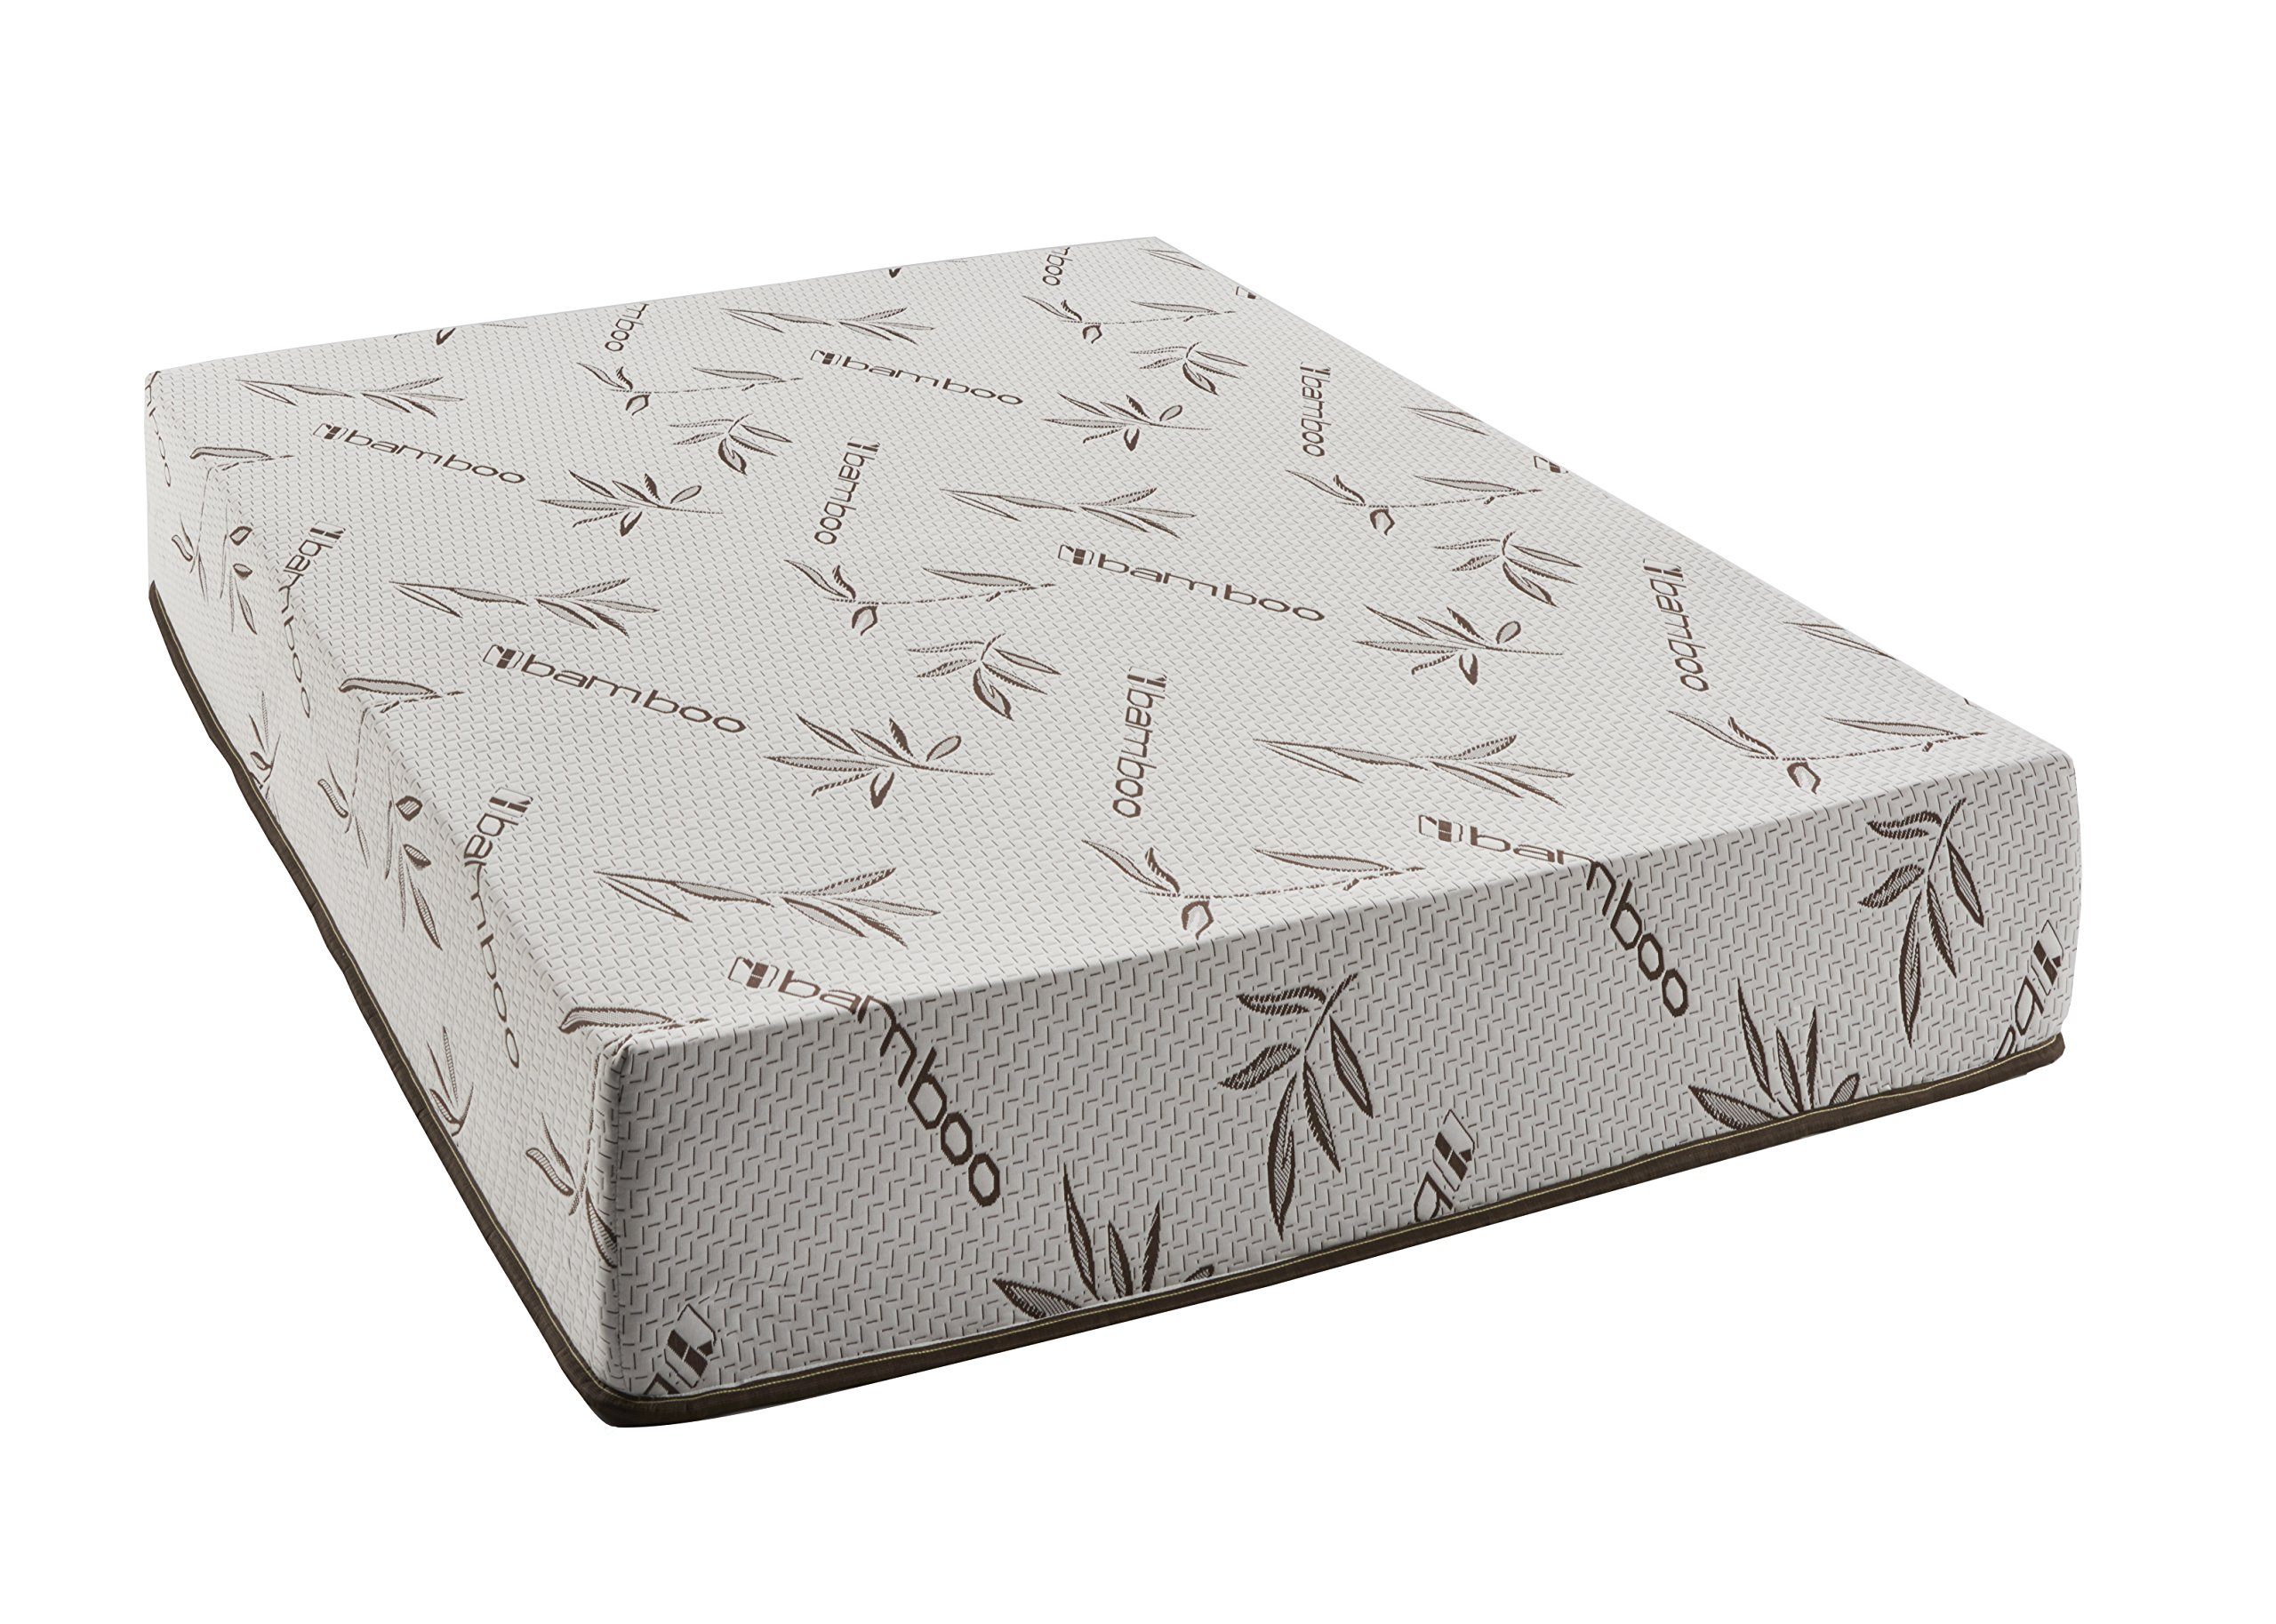 Customize Bed 10 Inch Gel Memory Foam Bamboo Mattress Cot